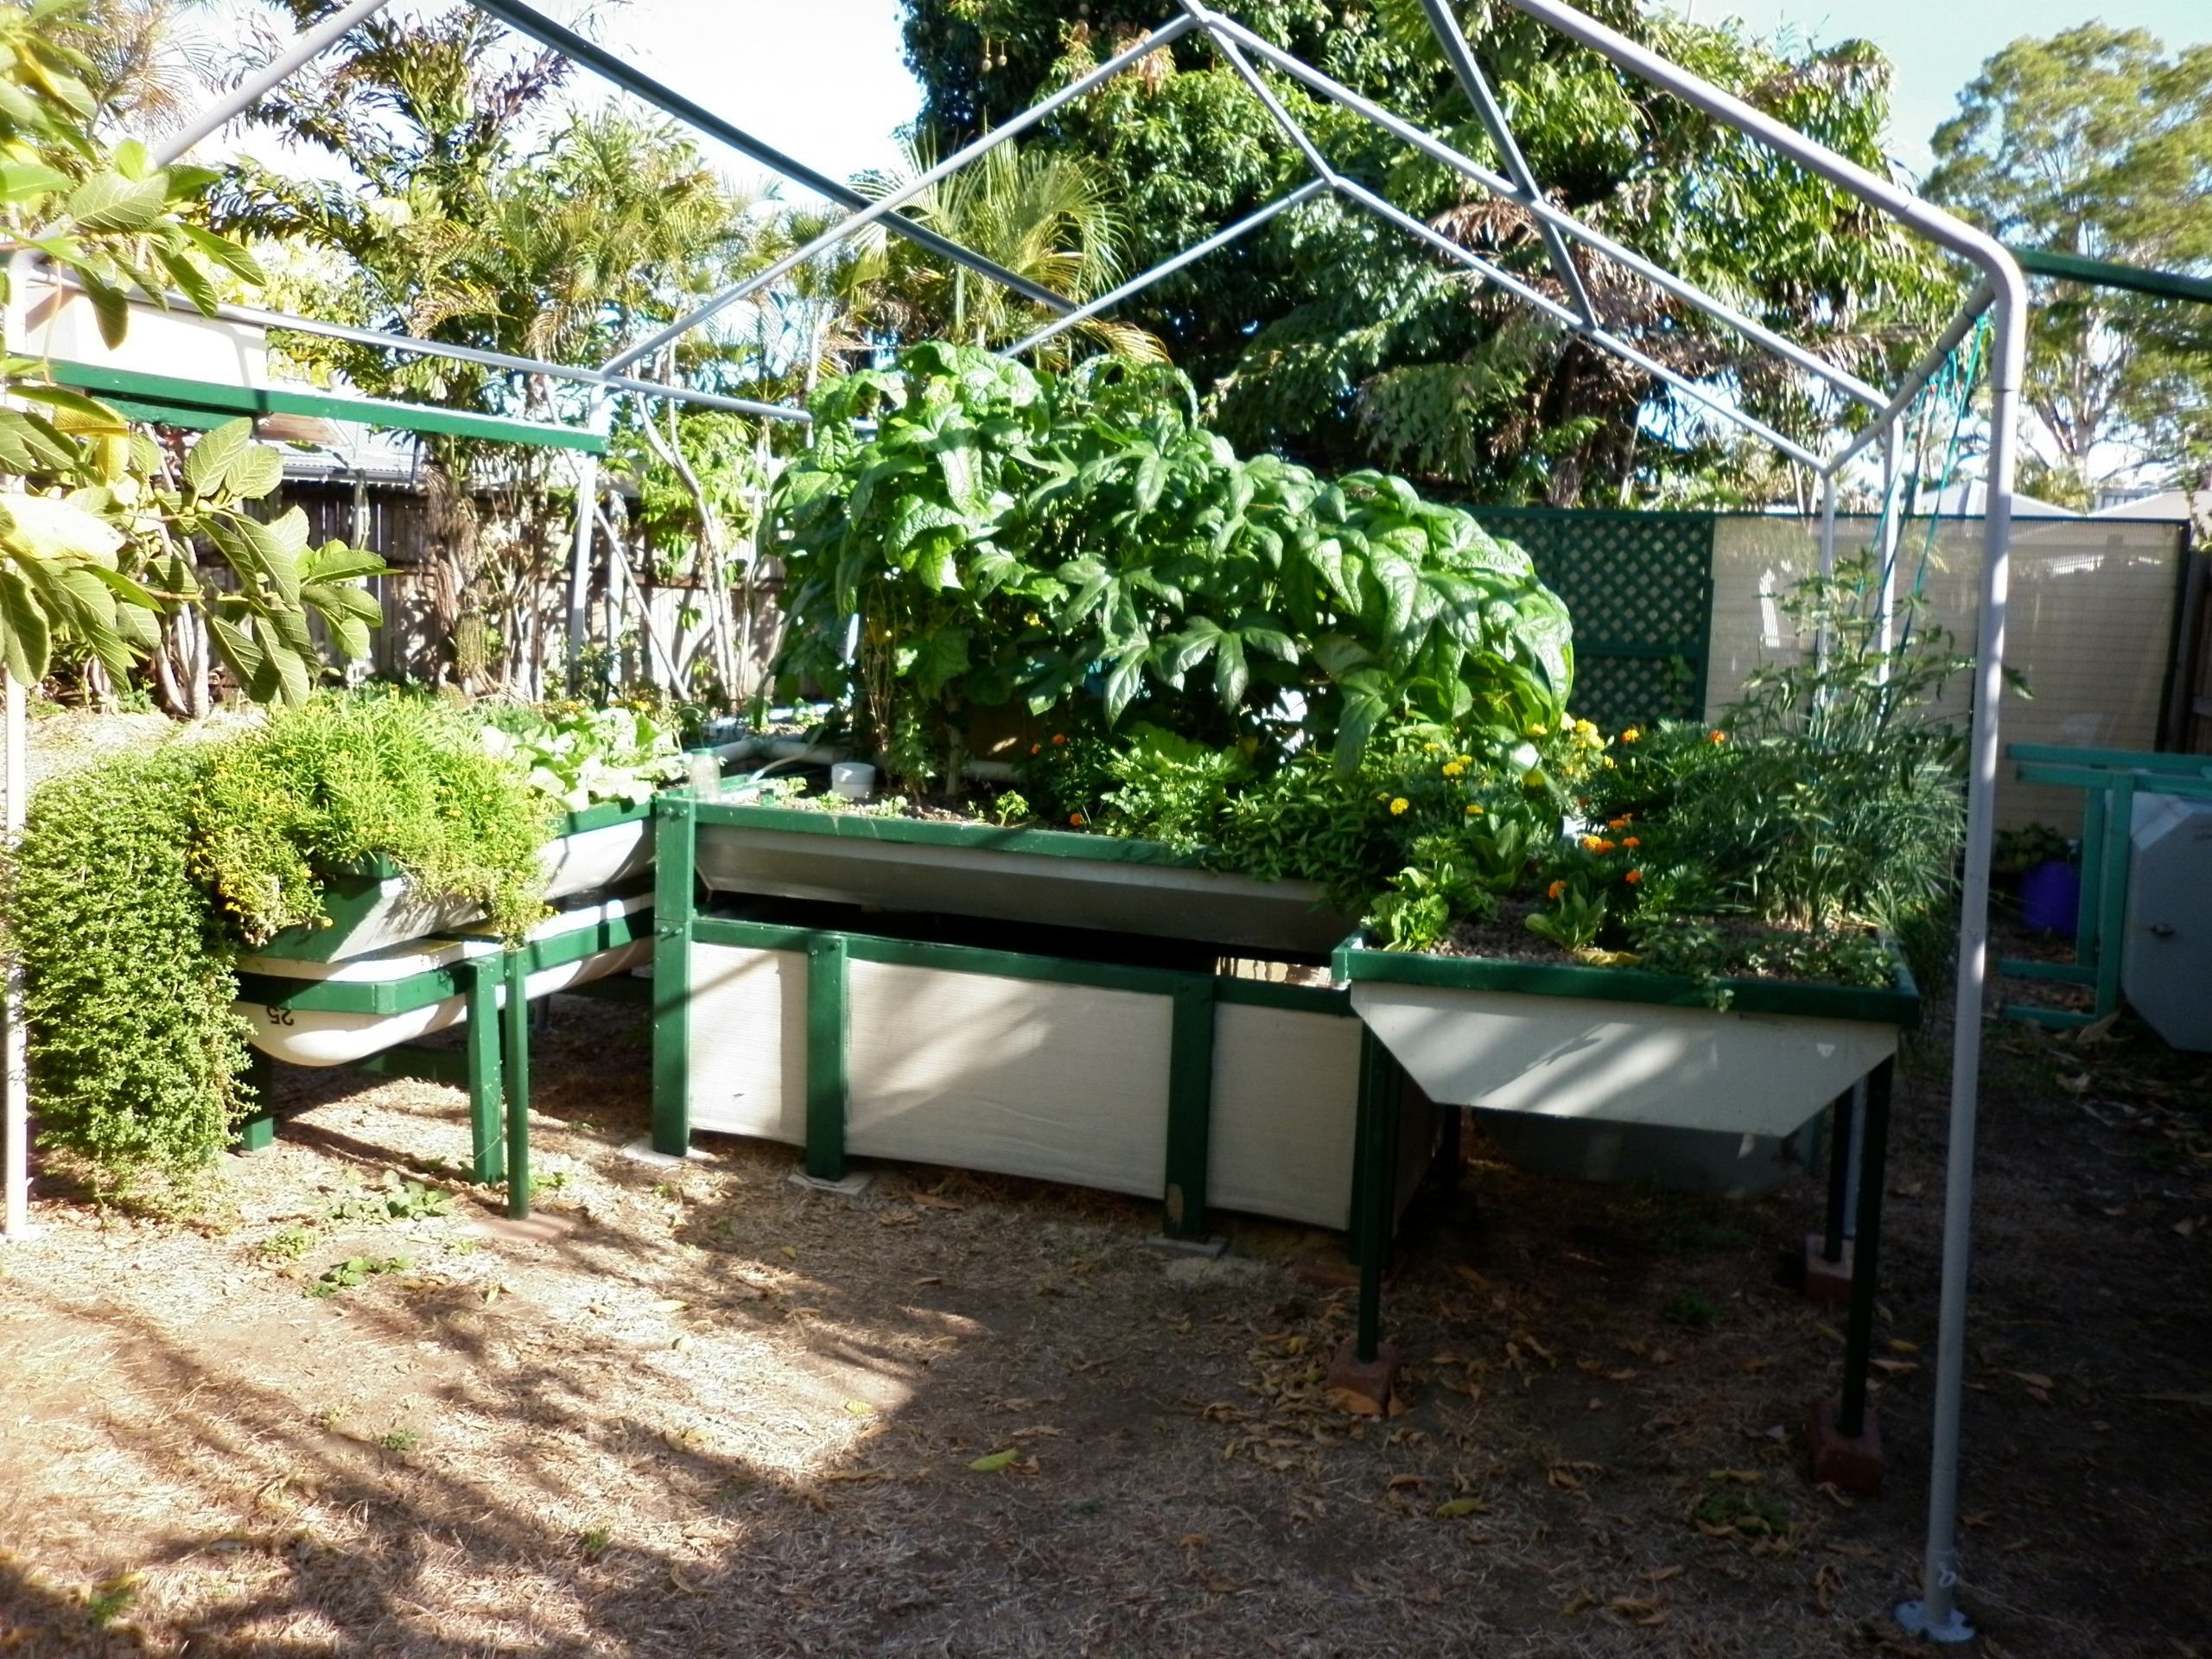 Beds Cairns Aquaponics In North Queensland Apuaponic Kits And Wicking Beds